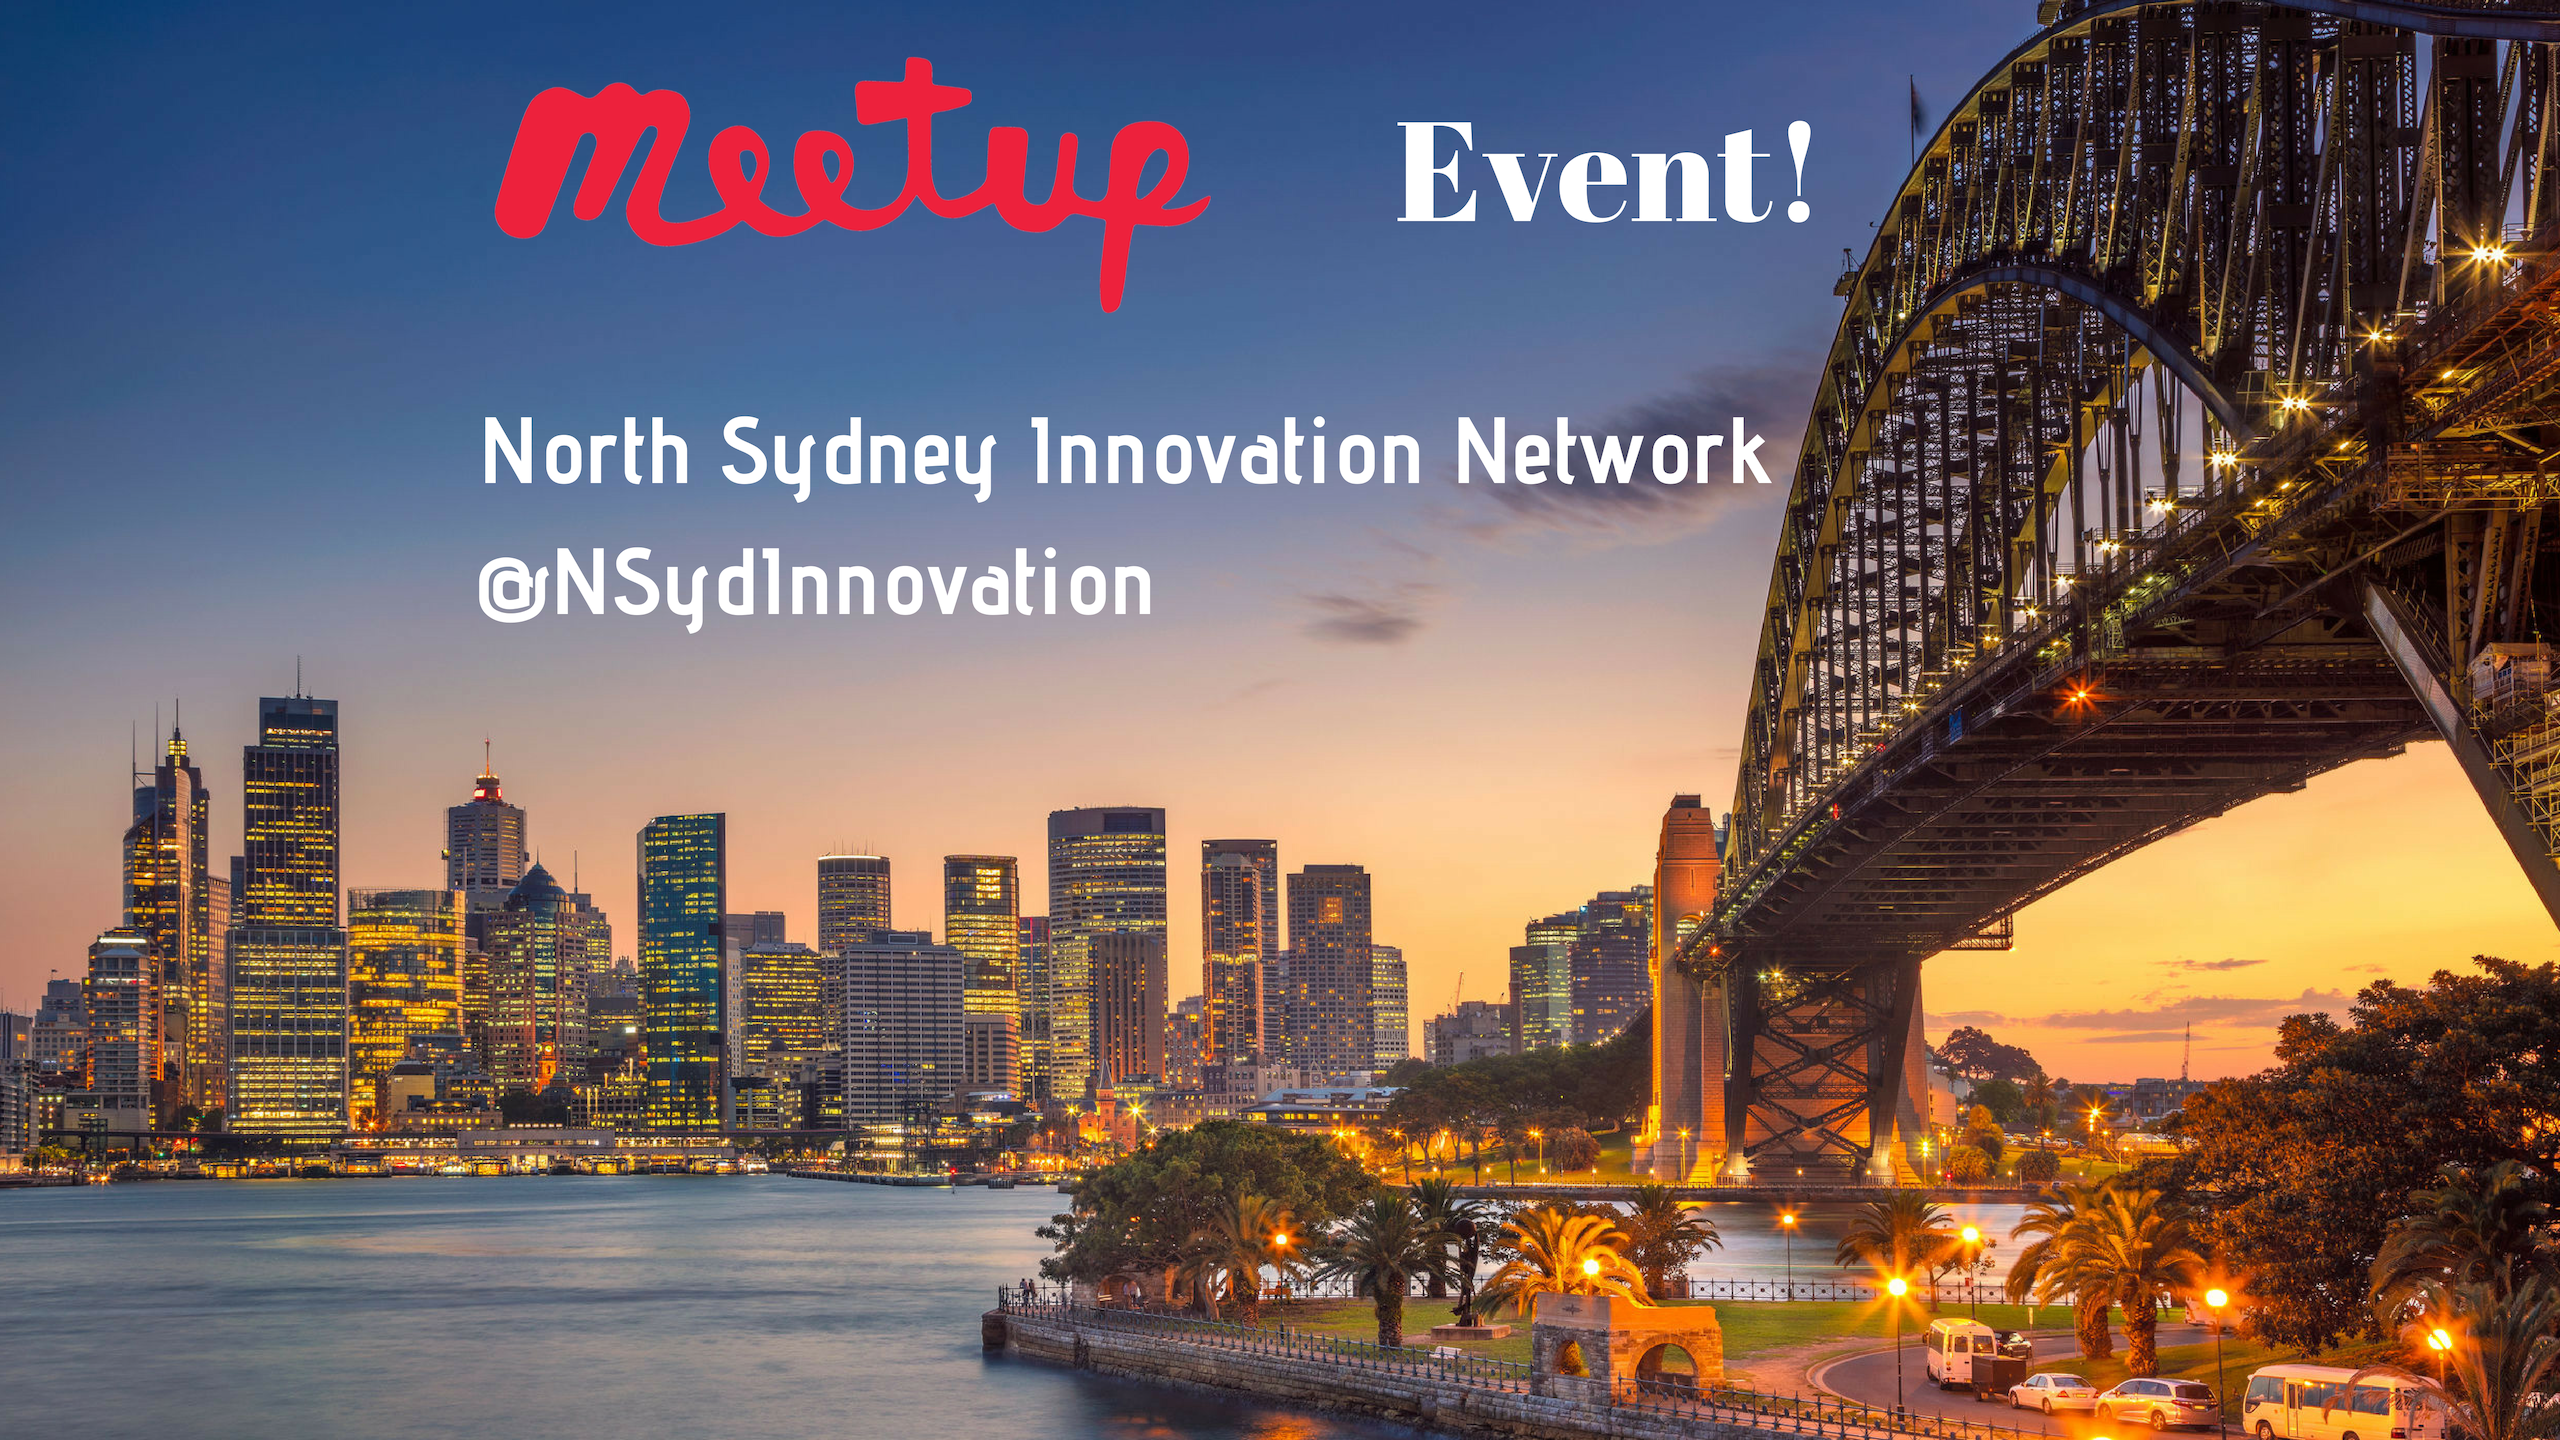 North Sydney Innovation Network